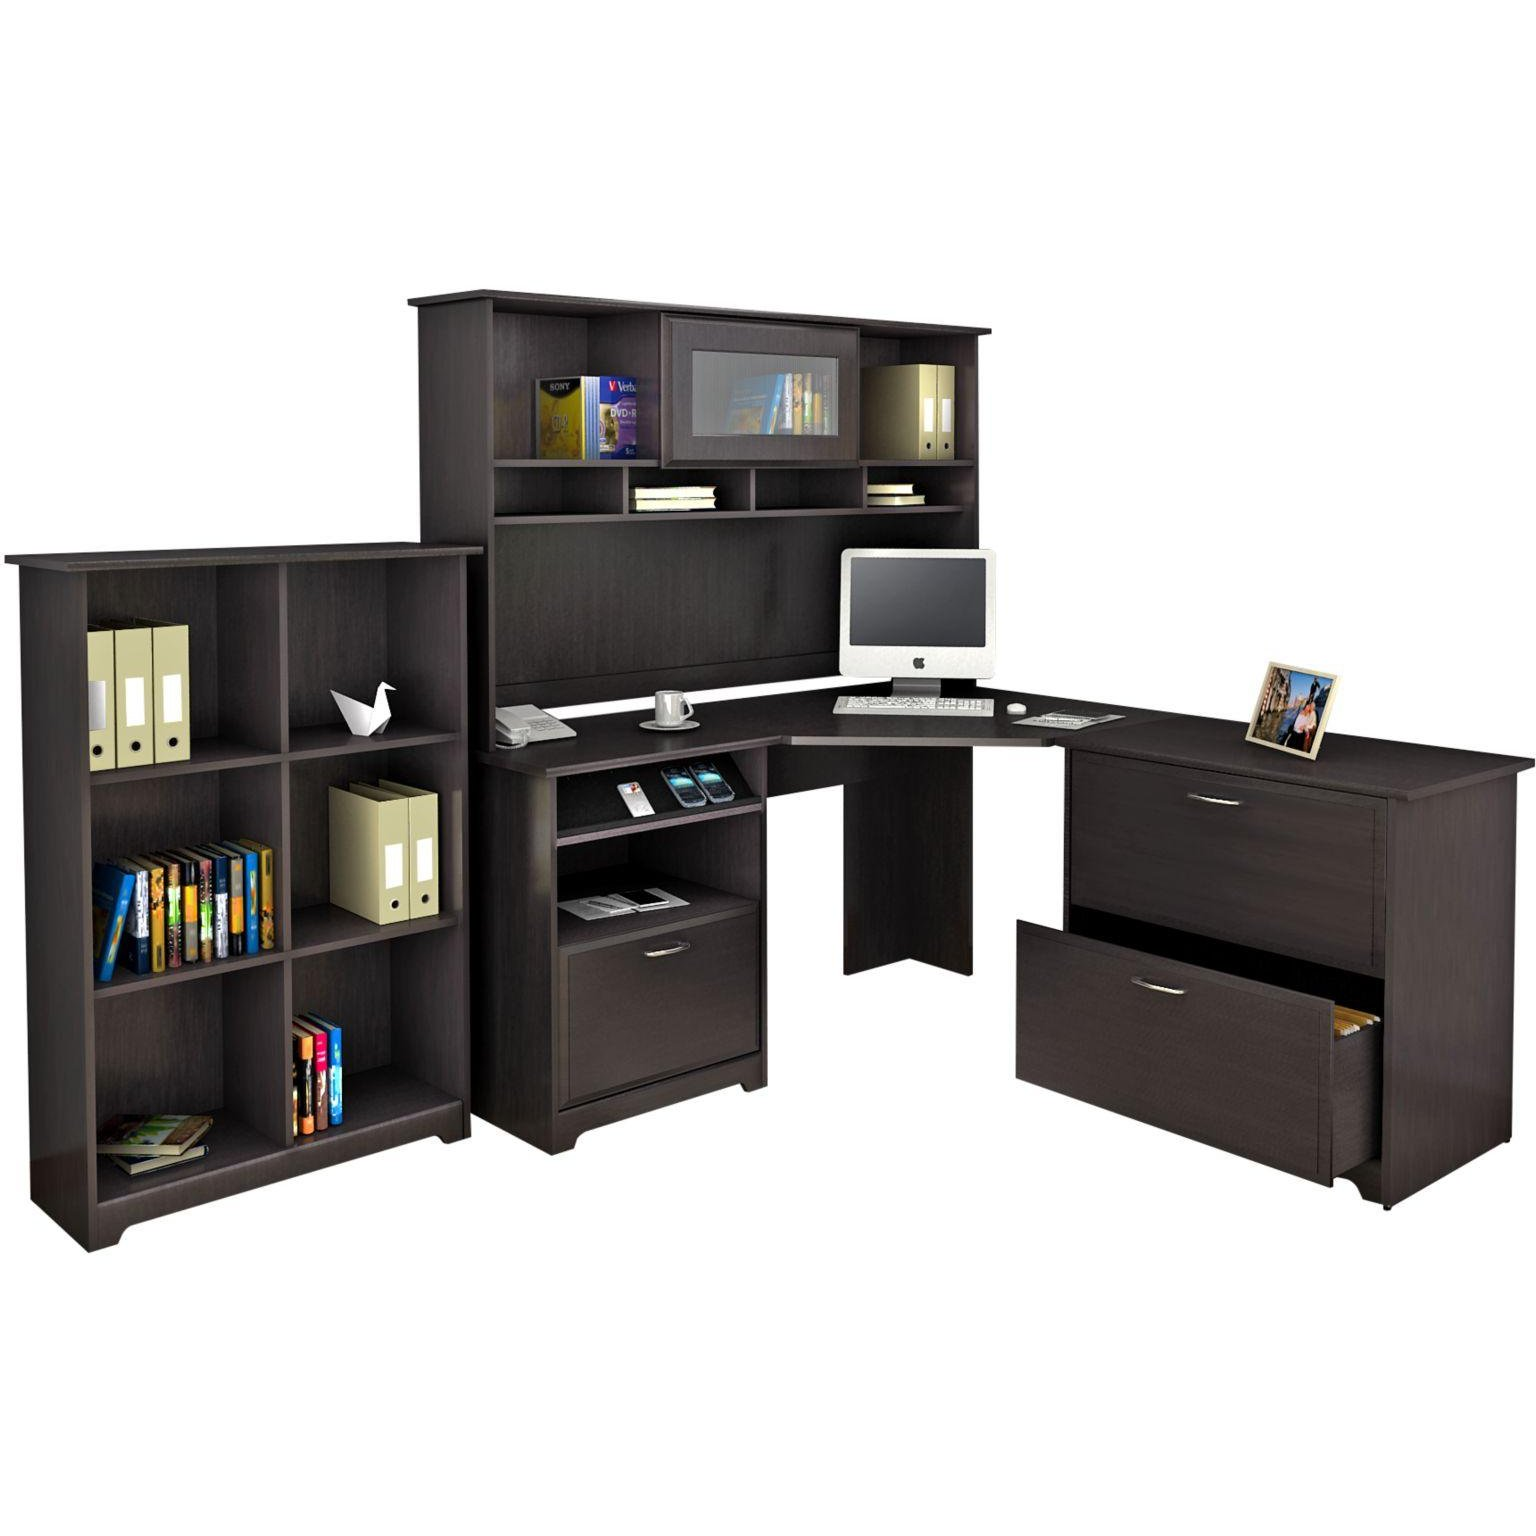 Espresso Oak Corner Desk With Hutch Lateral File And Bookcase Cabot Rc Willey Furniture